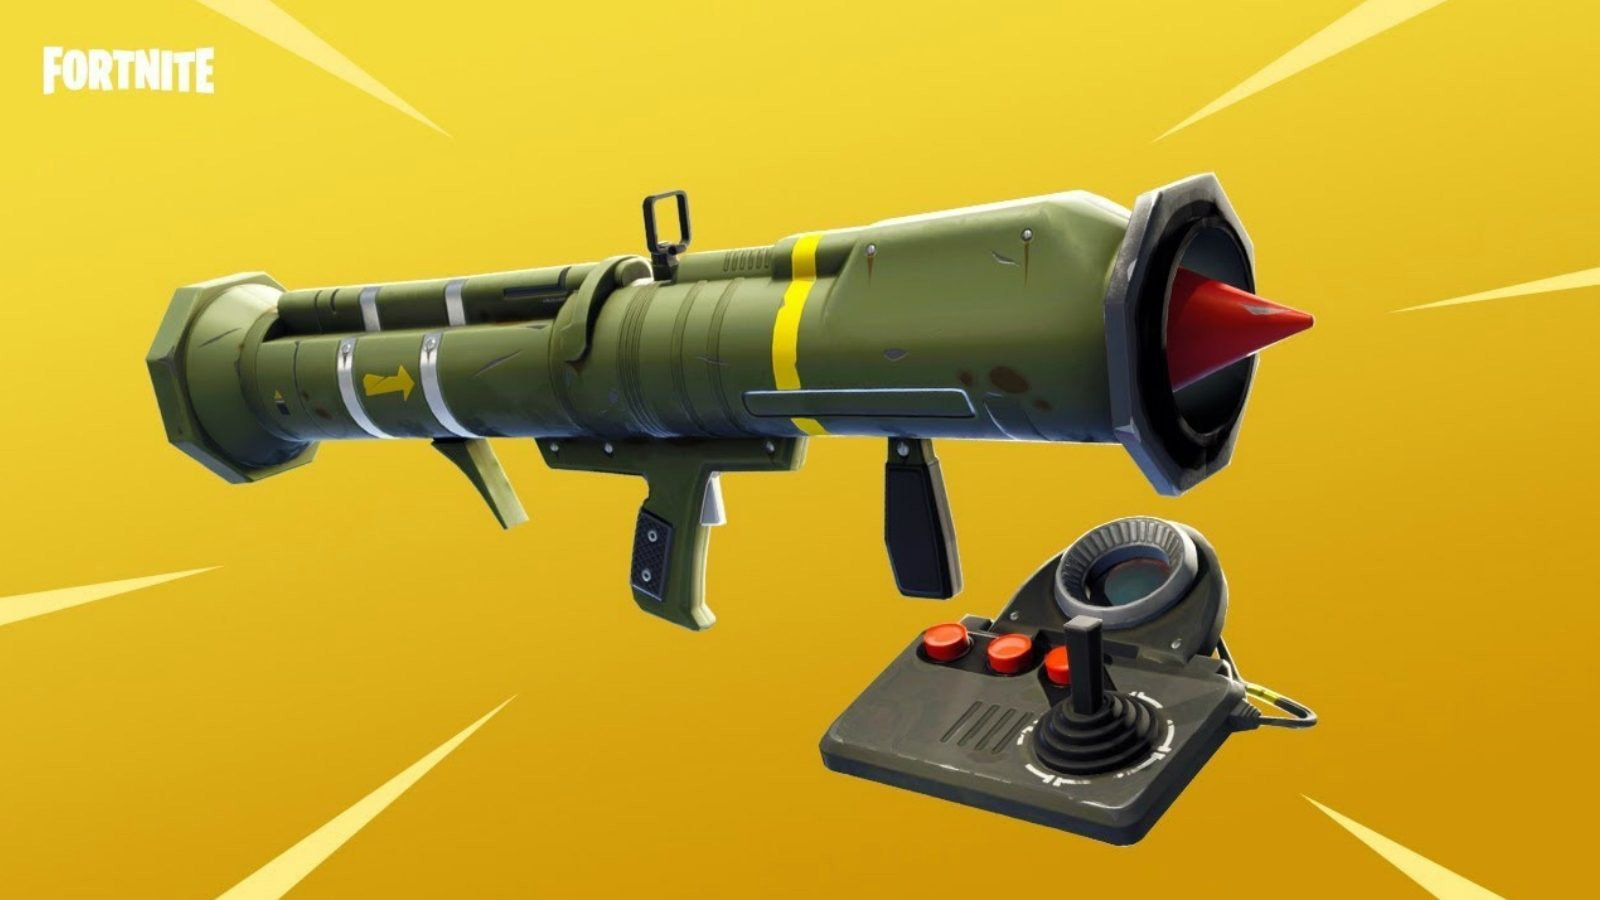 Fortnite Will Bring Back Guided Missiles In A Softer Gentler Form